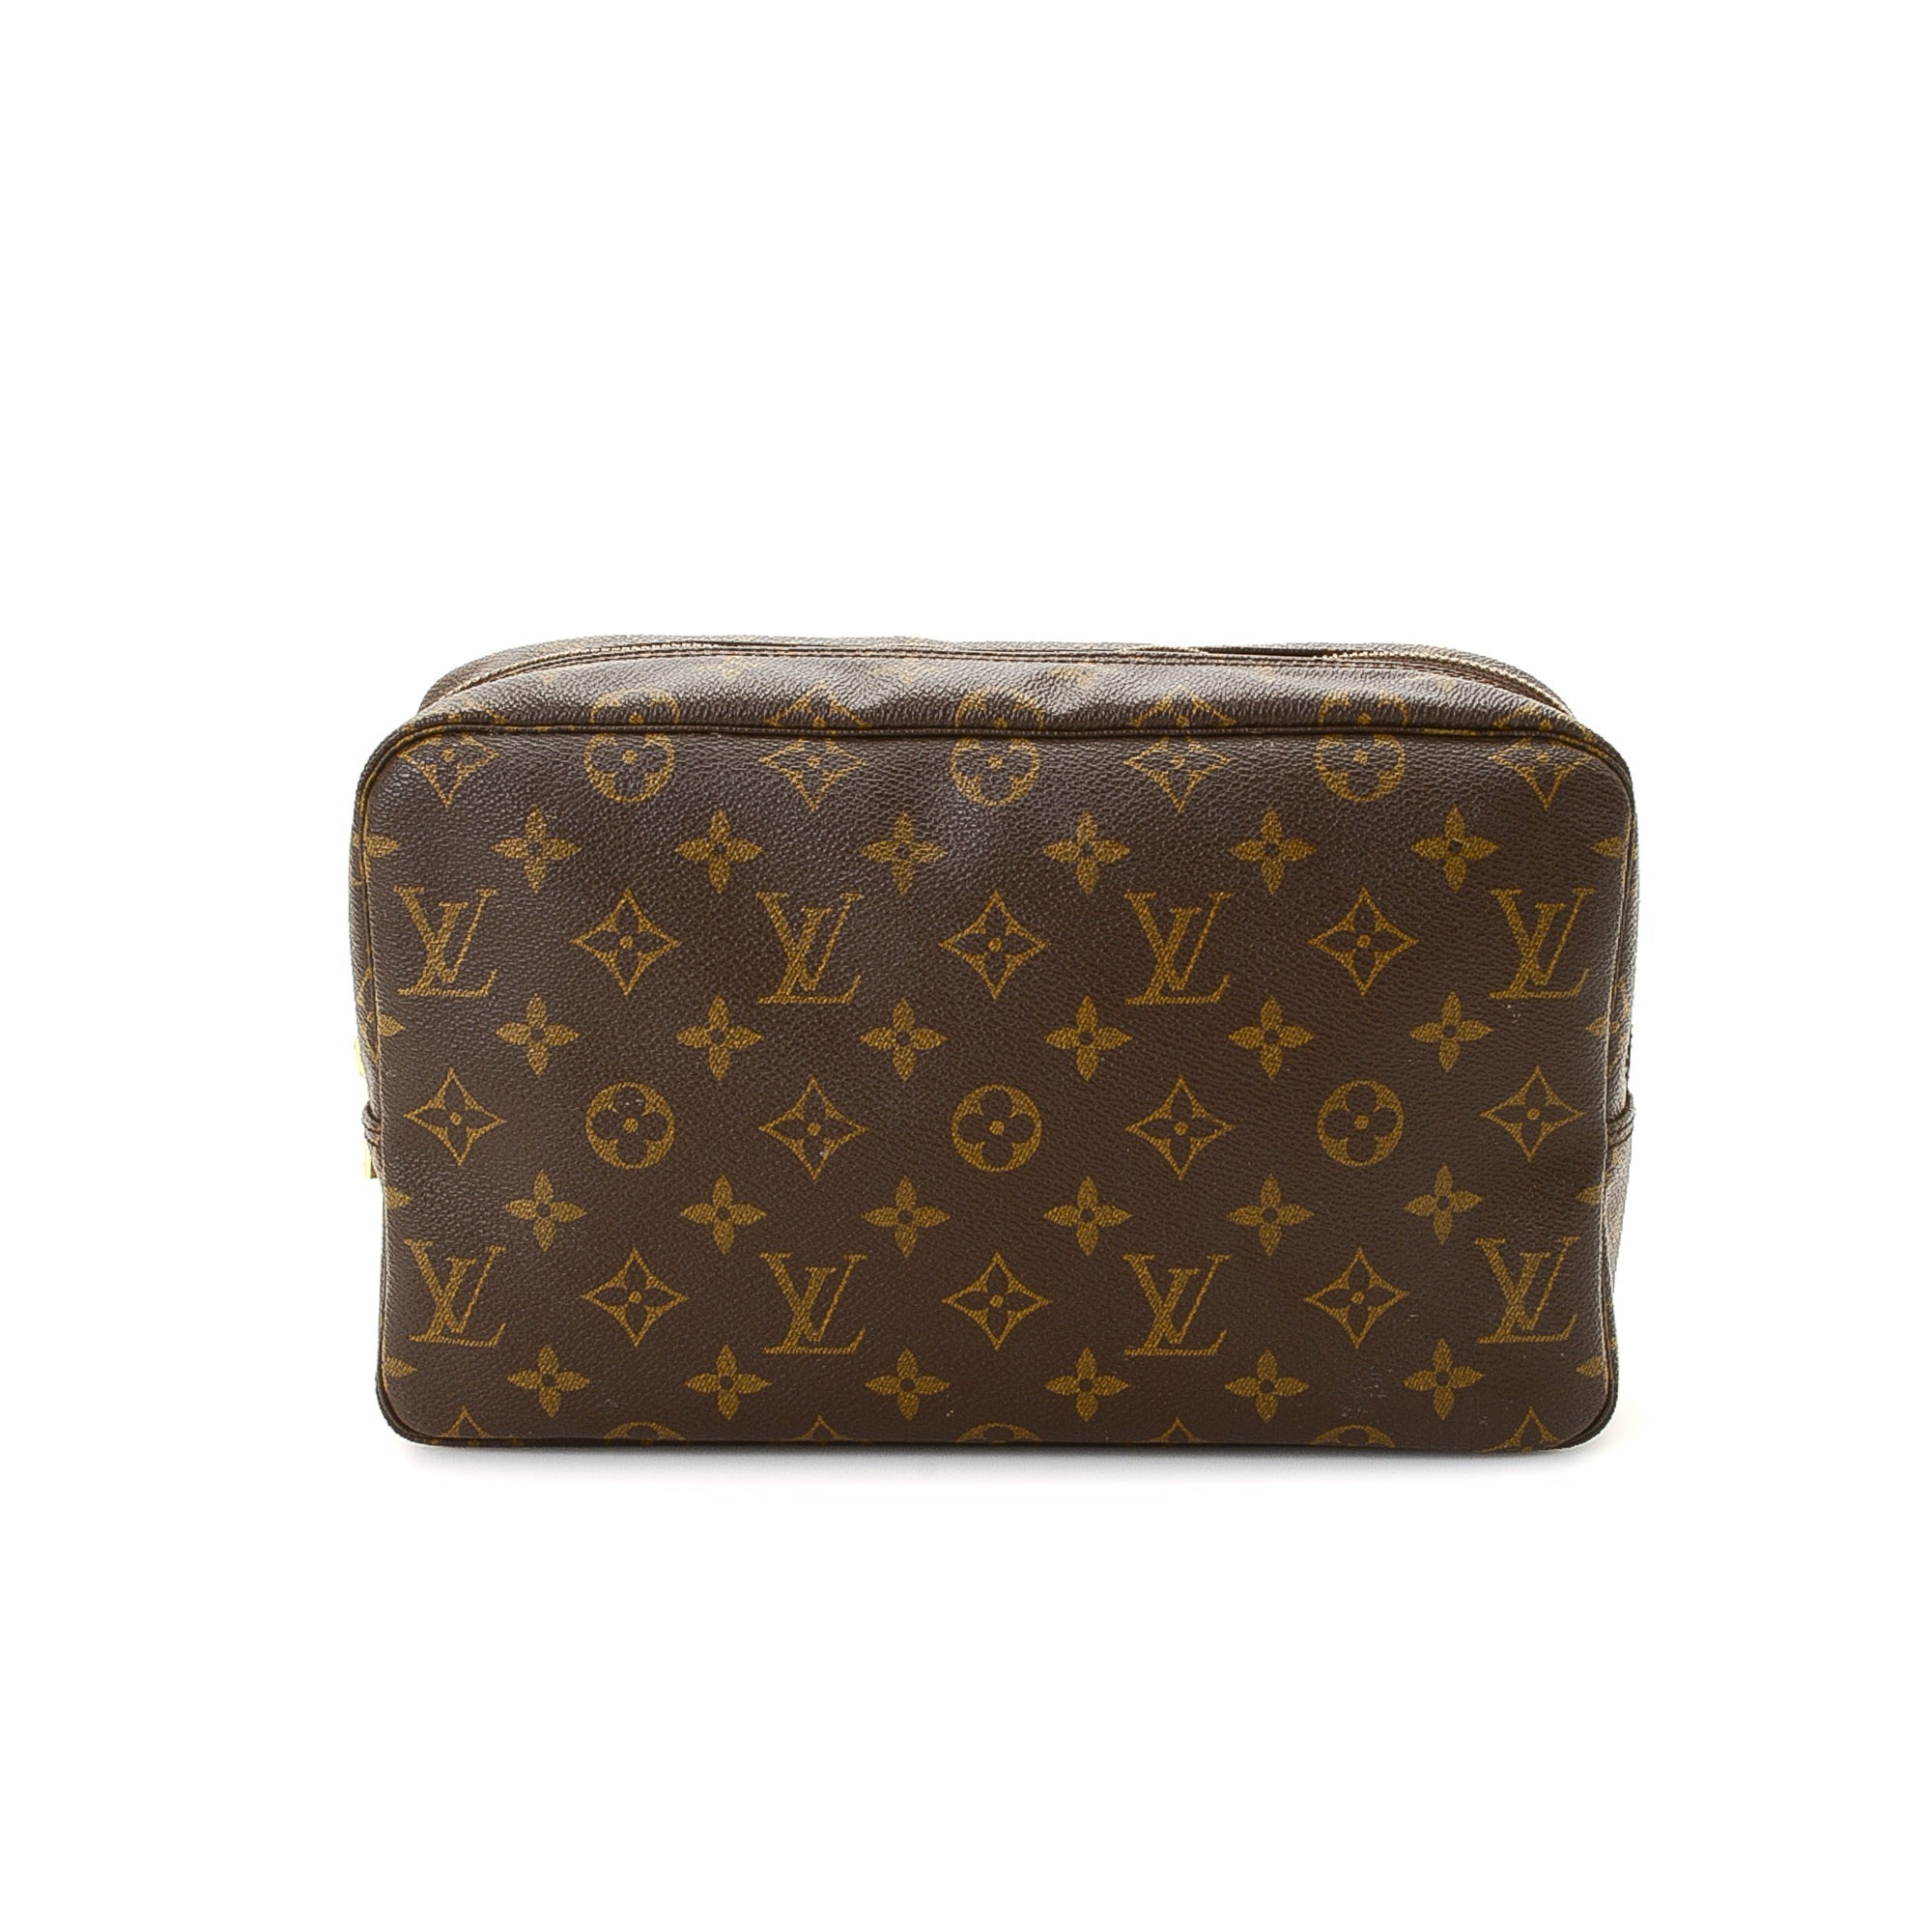 buy brown coated canvas louis vuitton vanity pouch at lxr co